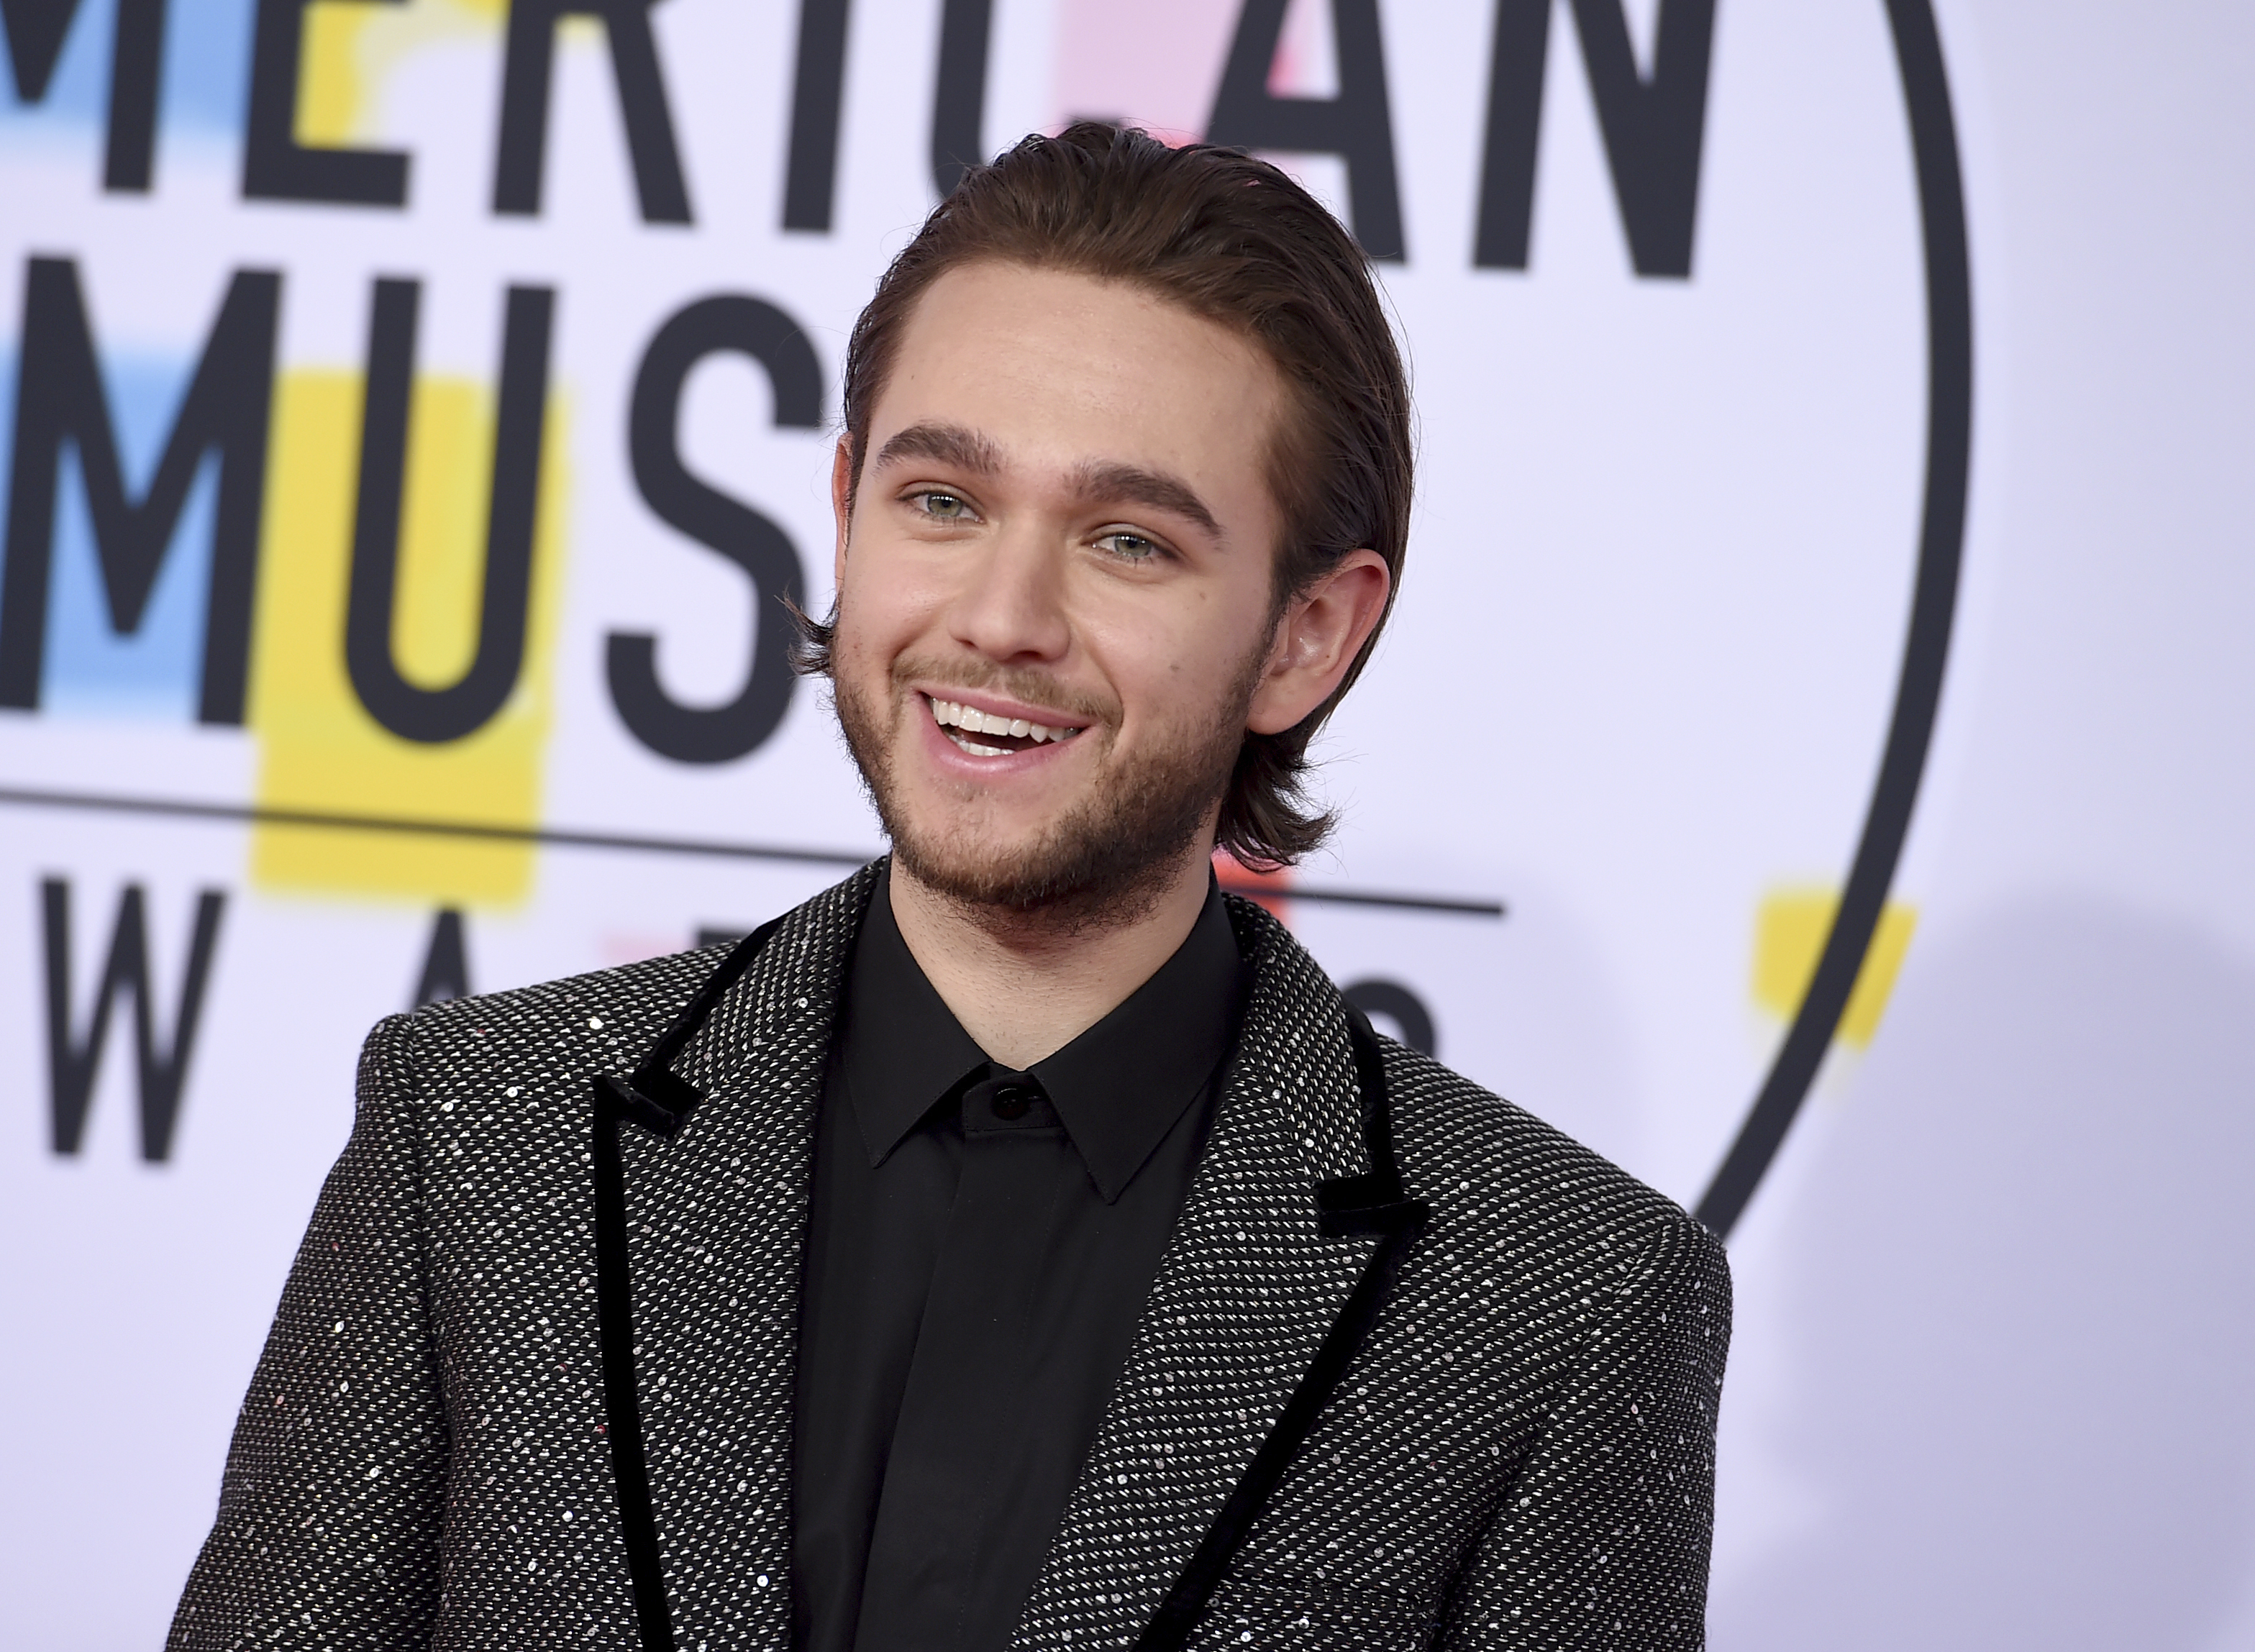 "<div class=""meta image-caption""><div class=""origin-logo origin-image none""><span>none</span></div><span class=""caption-text"">Zedd arrives at the American Music Awards on Tuesday, Oct. 9, 2018, at the Microsoft Theater in Los Angeles. (Jordan Strauss/Invision/AP)</span></div>"